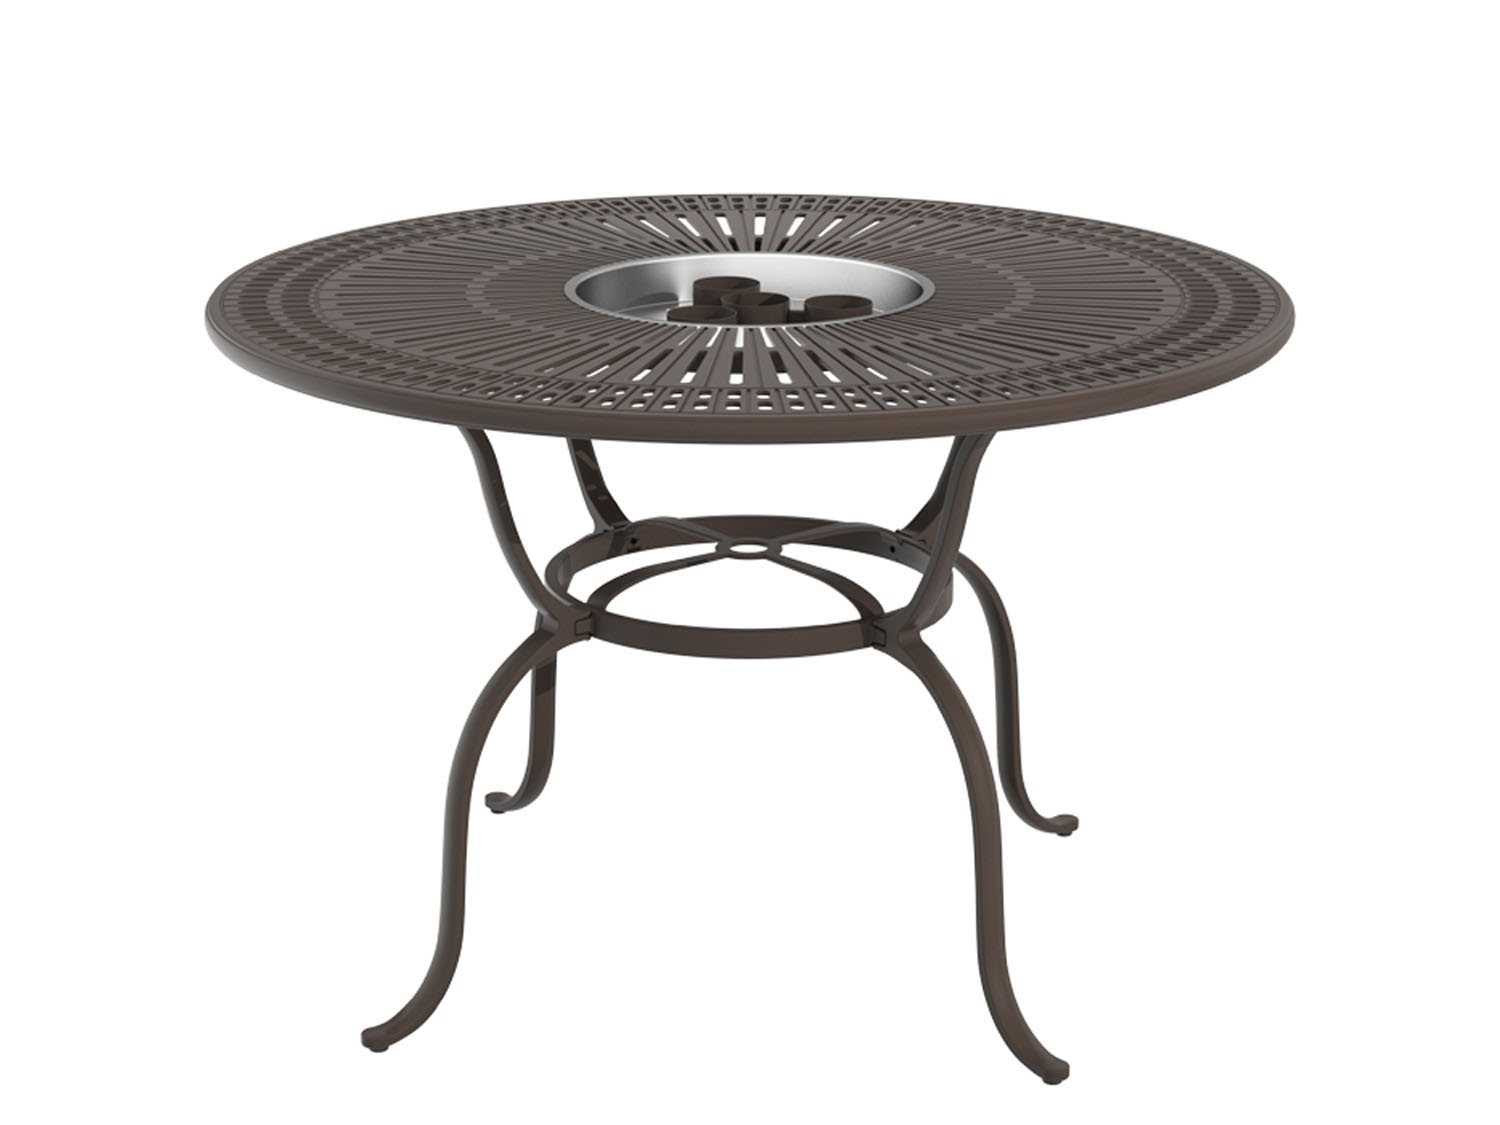 Tropitone Sectrum 55 Round Counter Height Fire Pit Table ...